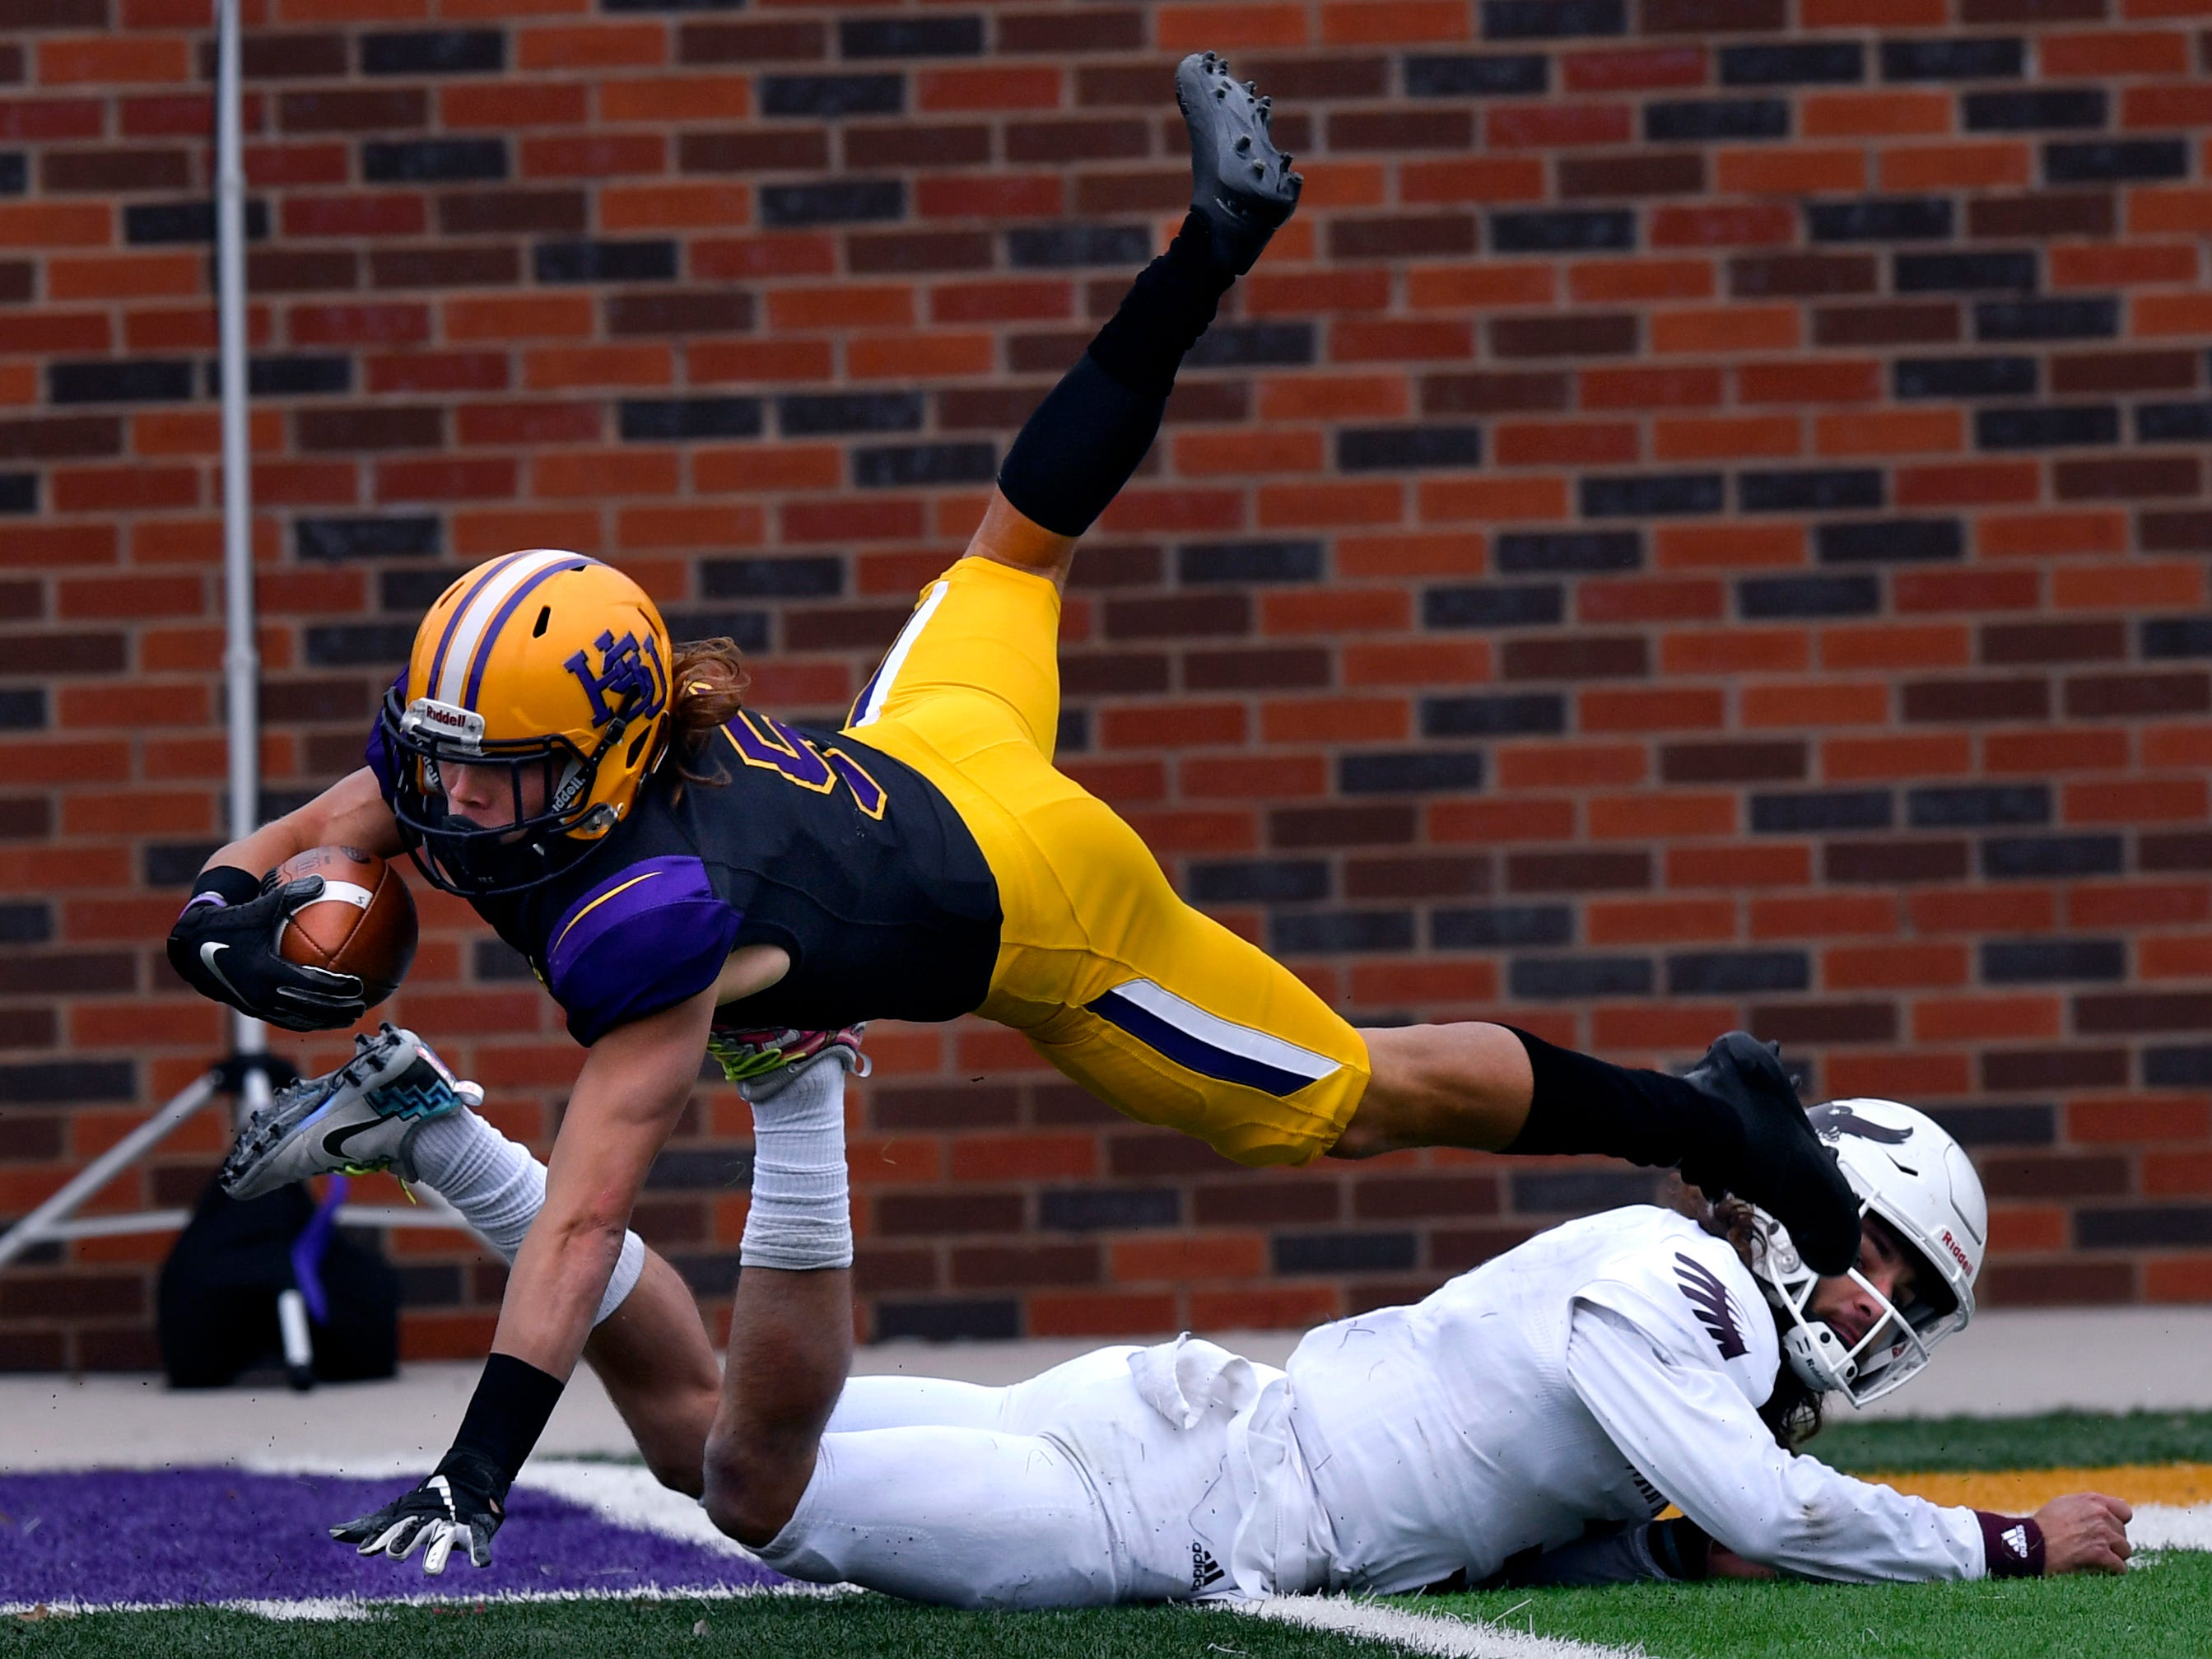 Hardin-Simmons wide receiver Reese Childress dives after being tackled by McMurry quarterback Kevin Hurley, jr. during Saturday's crosstown game at HSU Nov. 10, 2018. Final score was 83-6, HSU.